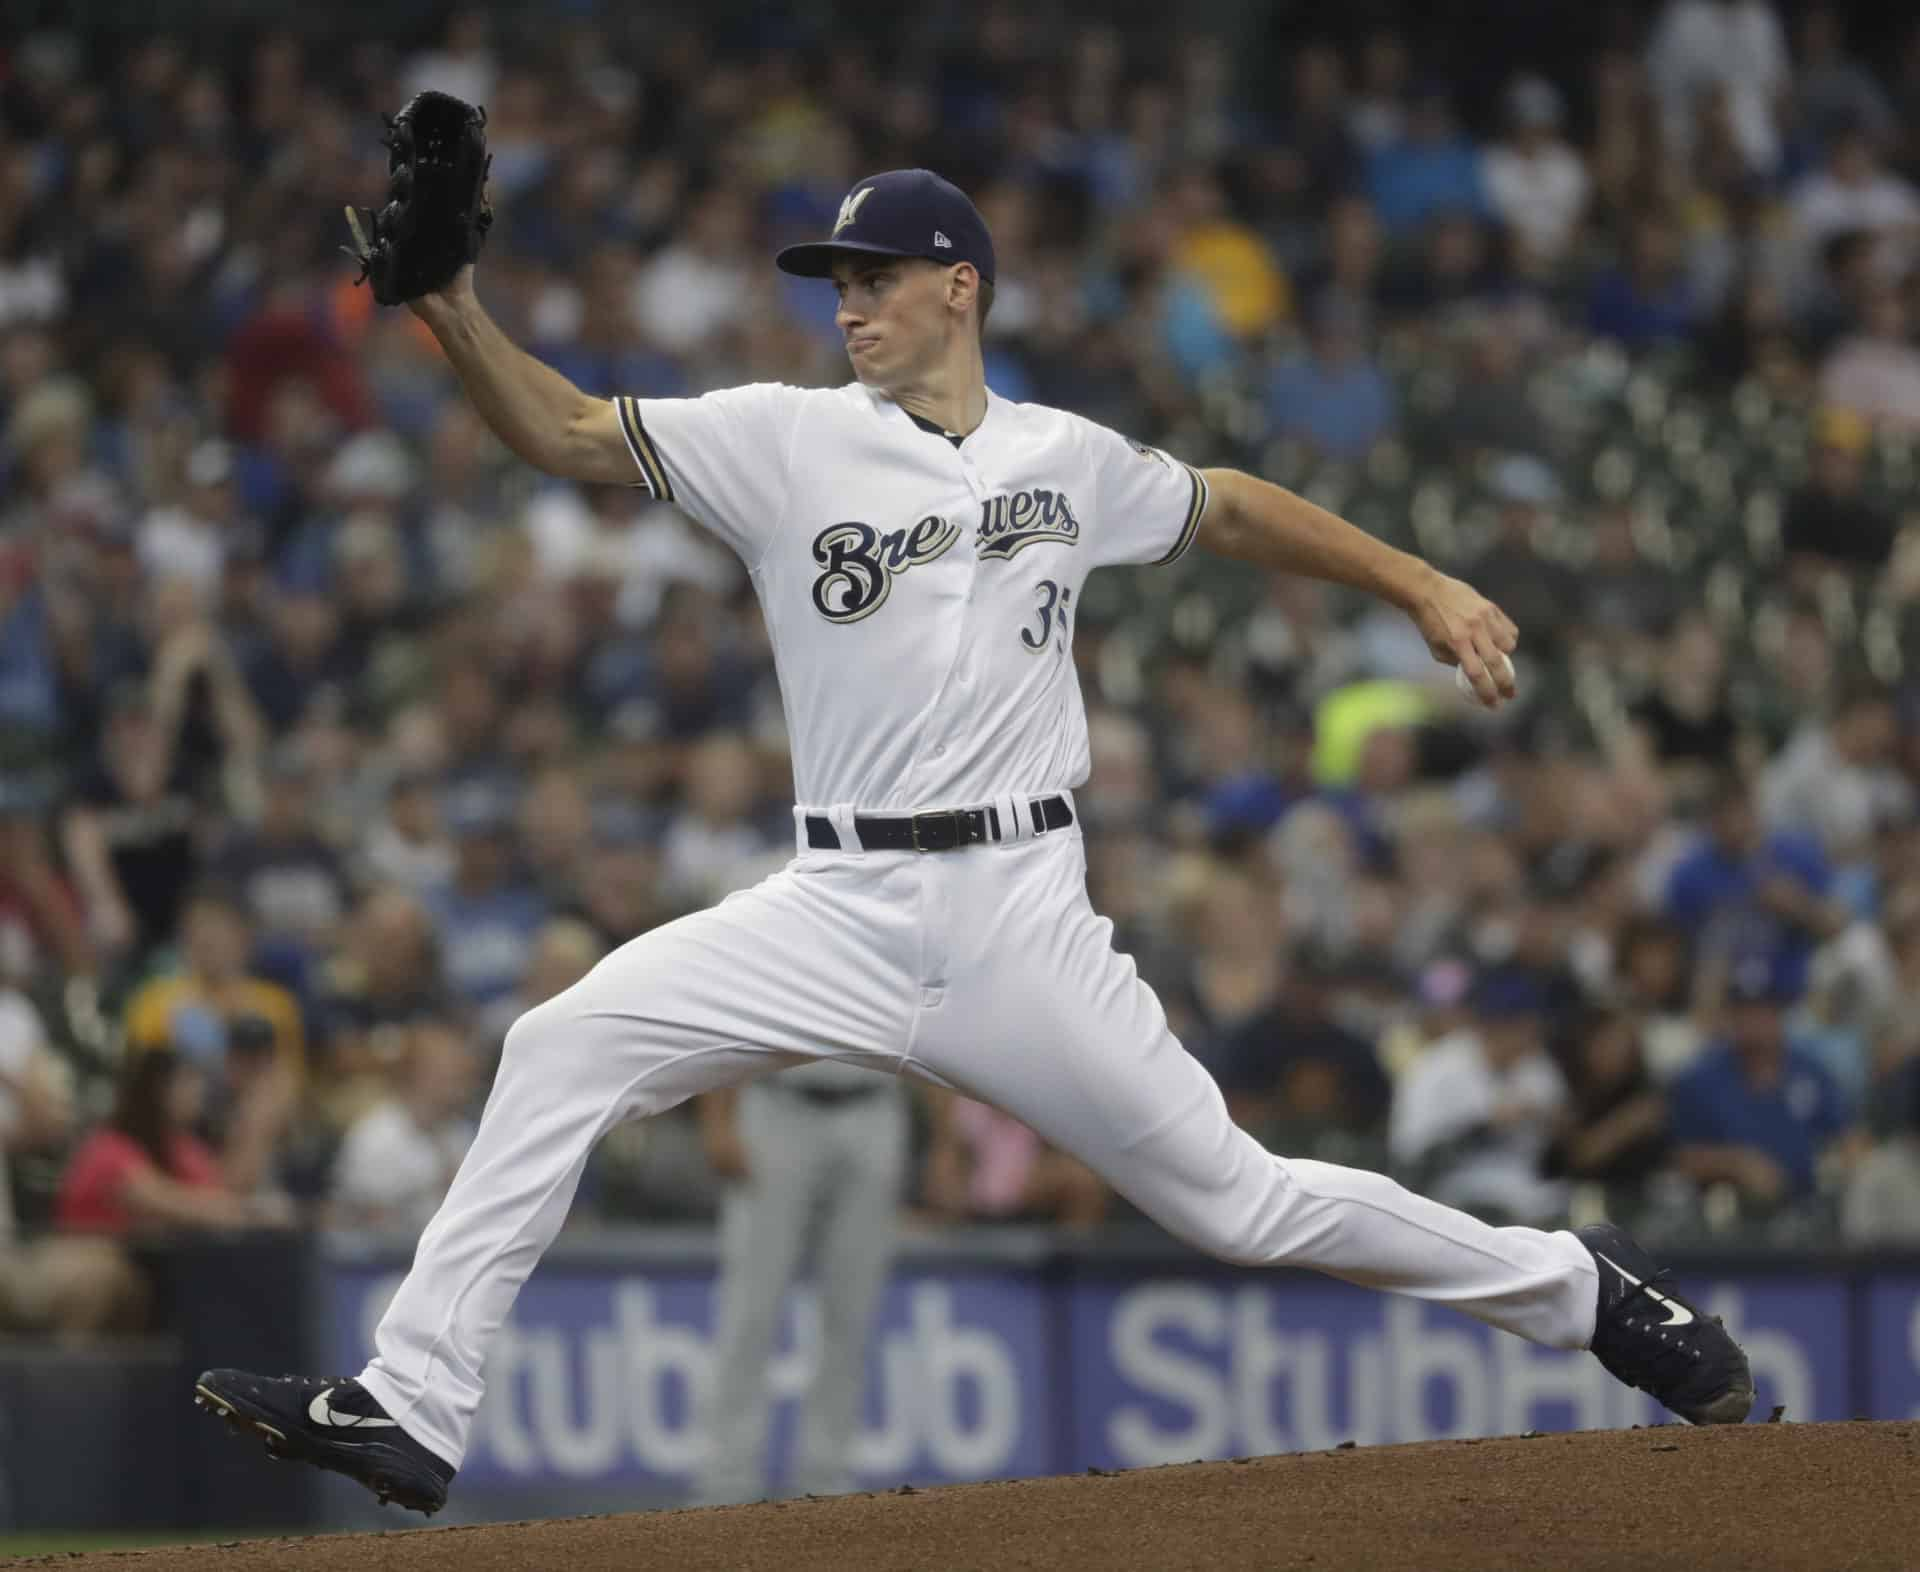 Brent Suter: Facing the Fire of Injury - Sports Faith